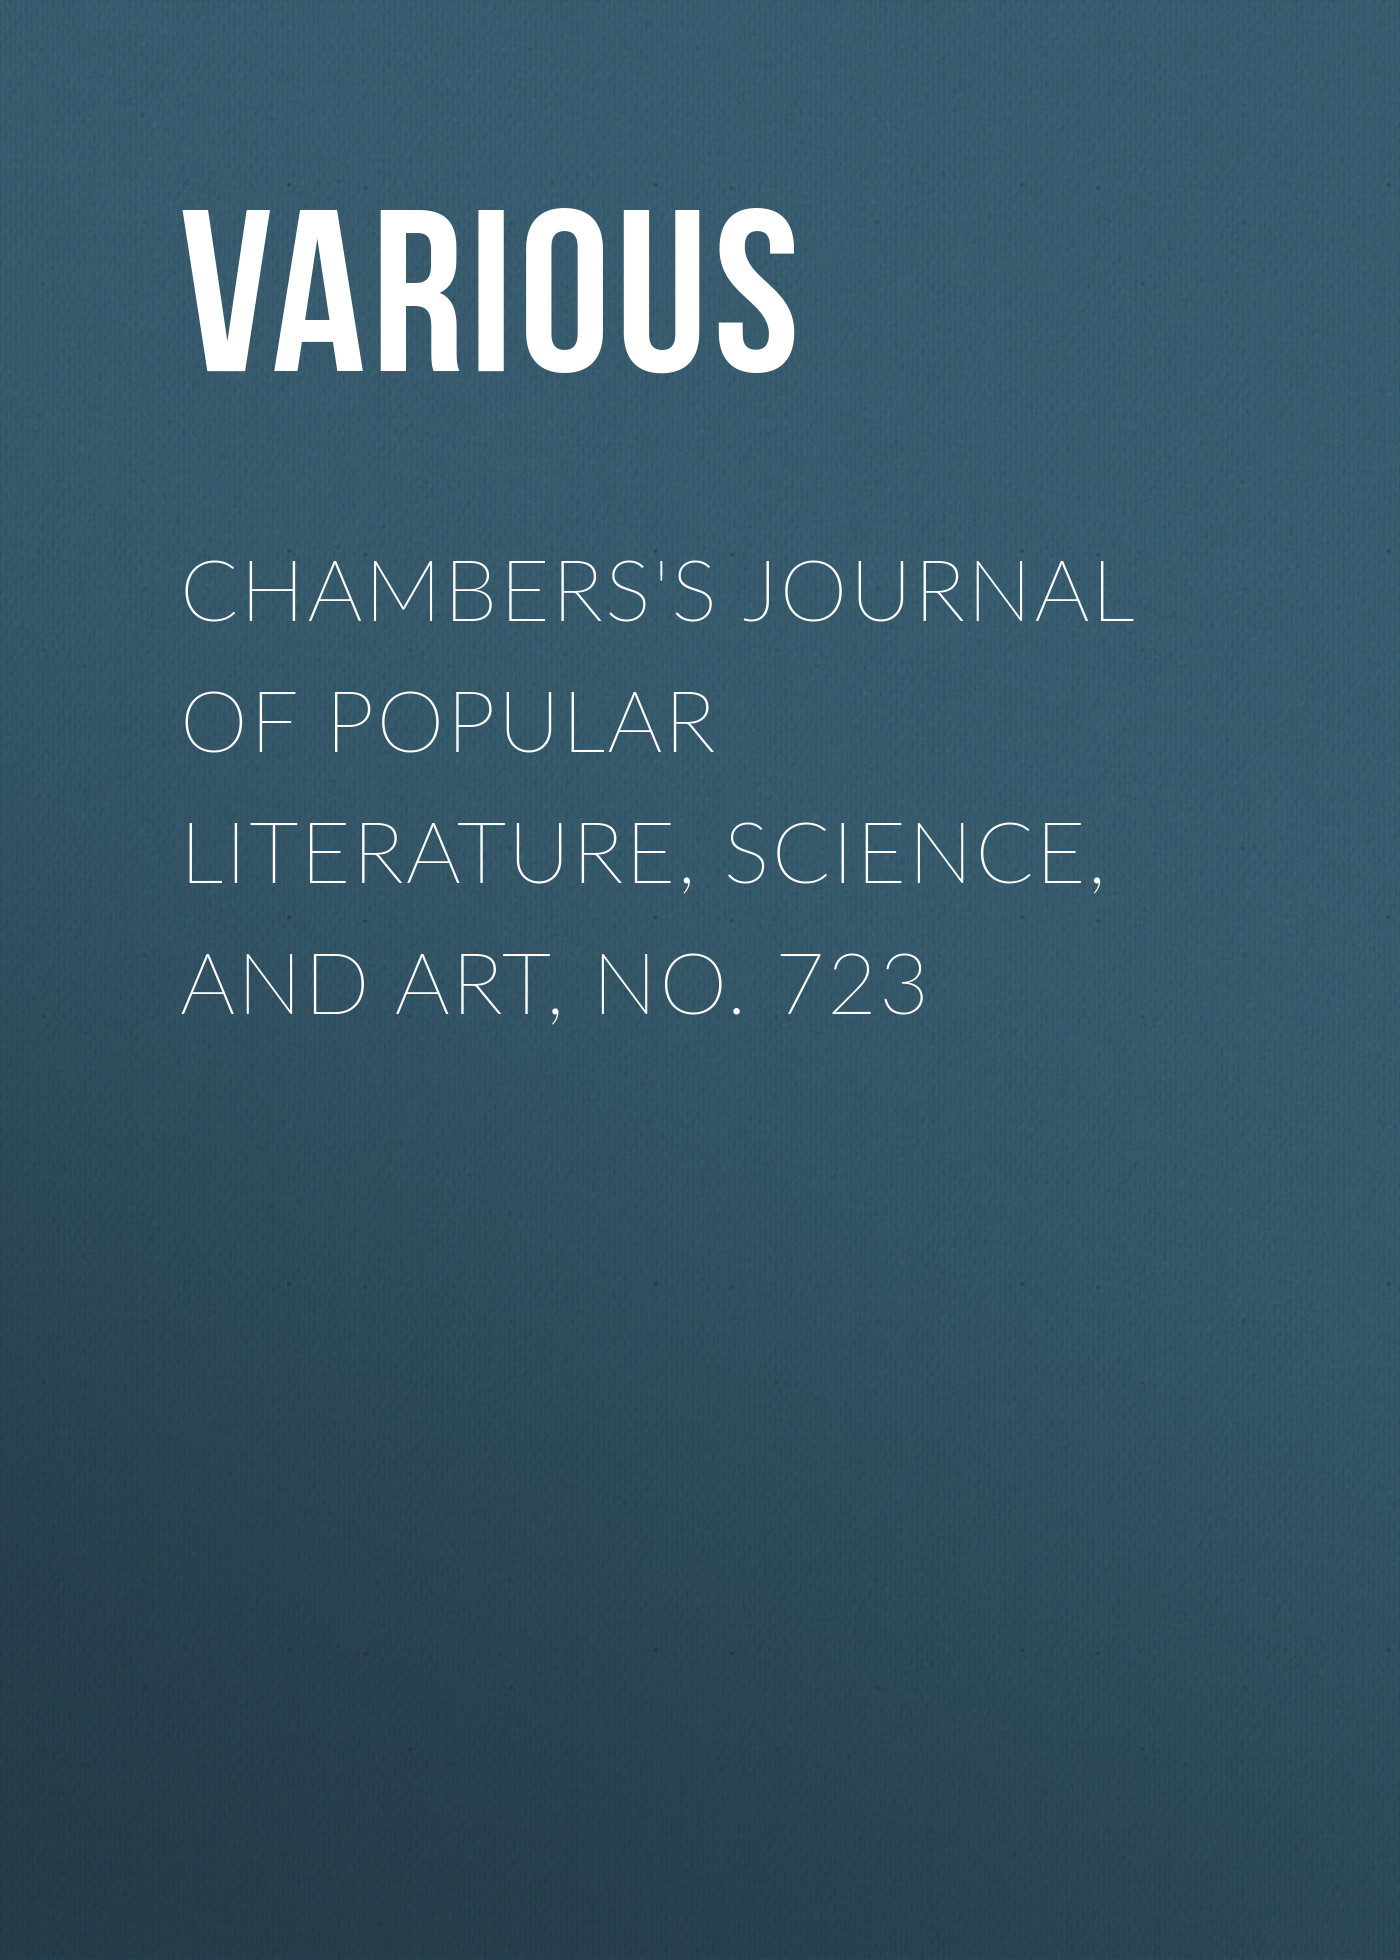 Chambers's Journal of Popular Literature, Science, and Art, No. 723